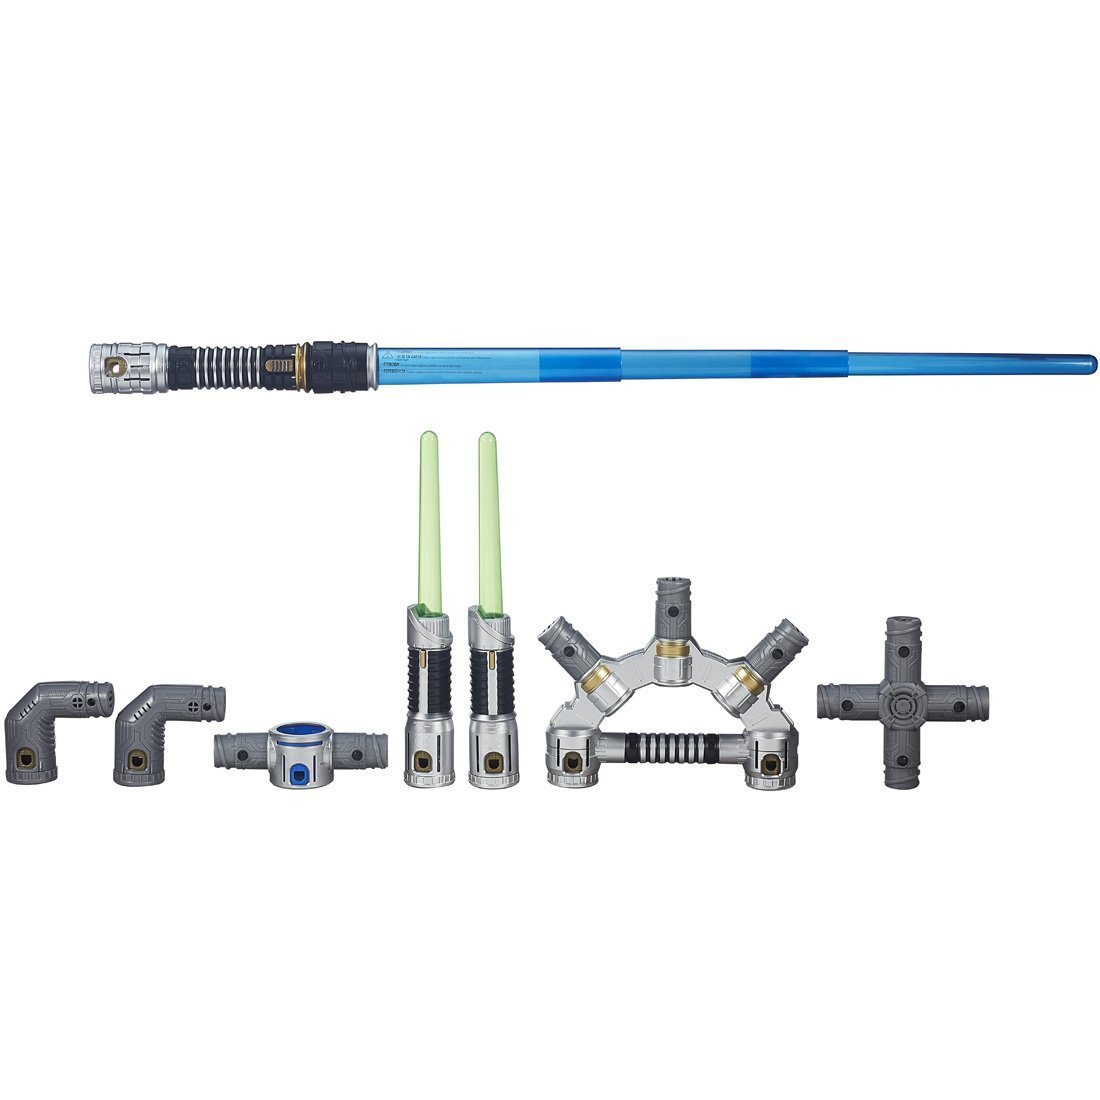 STAR WARS The Force Awakens JEDI MASTER LIGHTSABER TAKARA TOMY from Japan